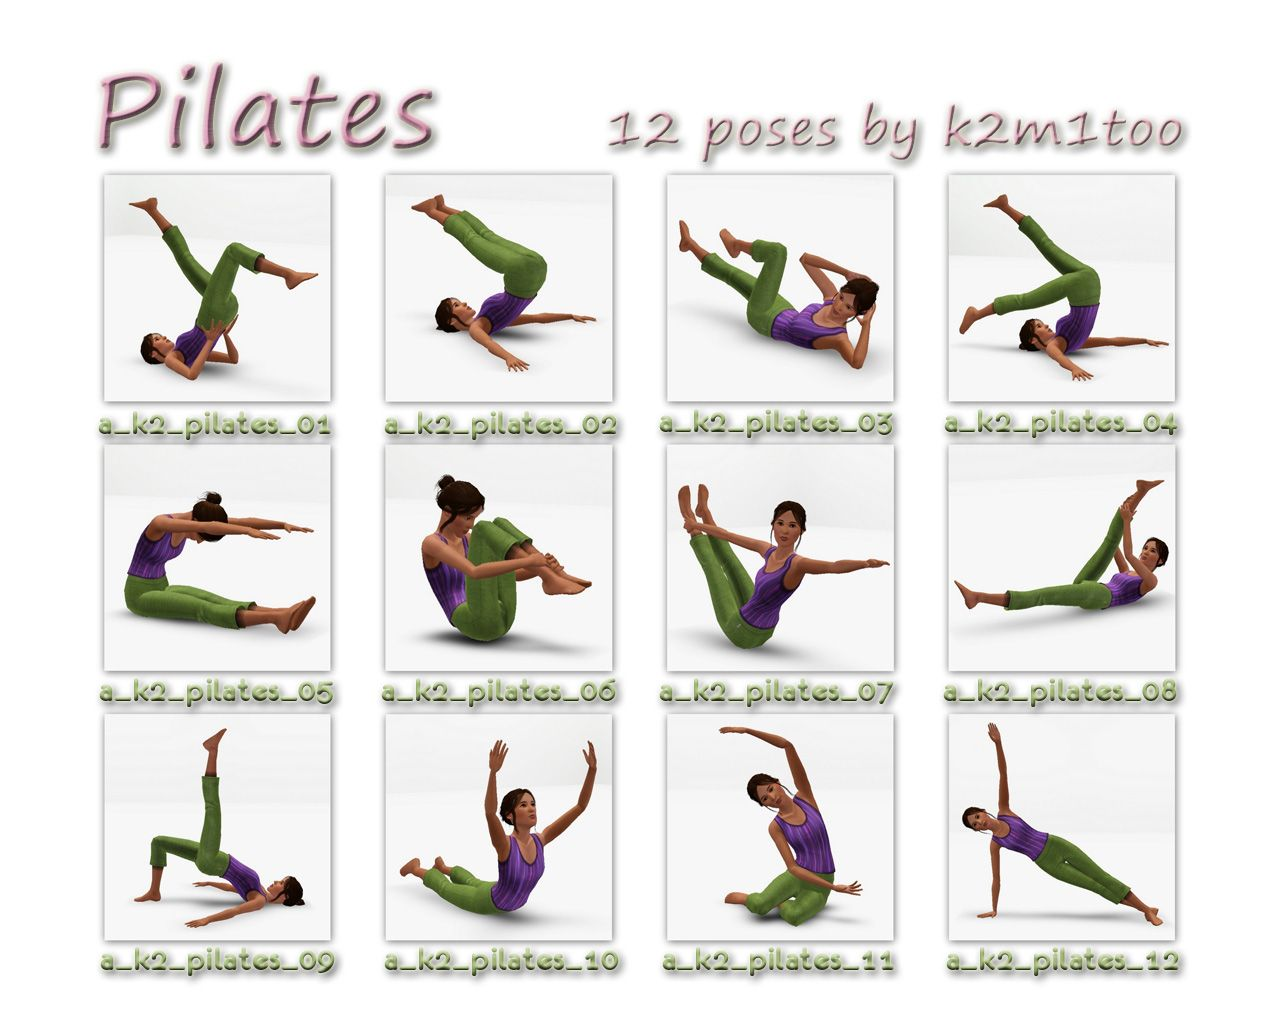 Citaten Tijd Itu Apa : Pilates poses pinterest